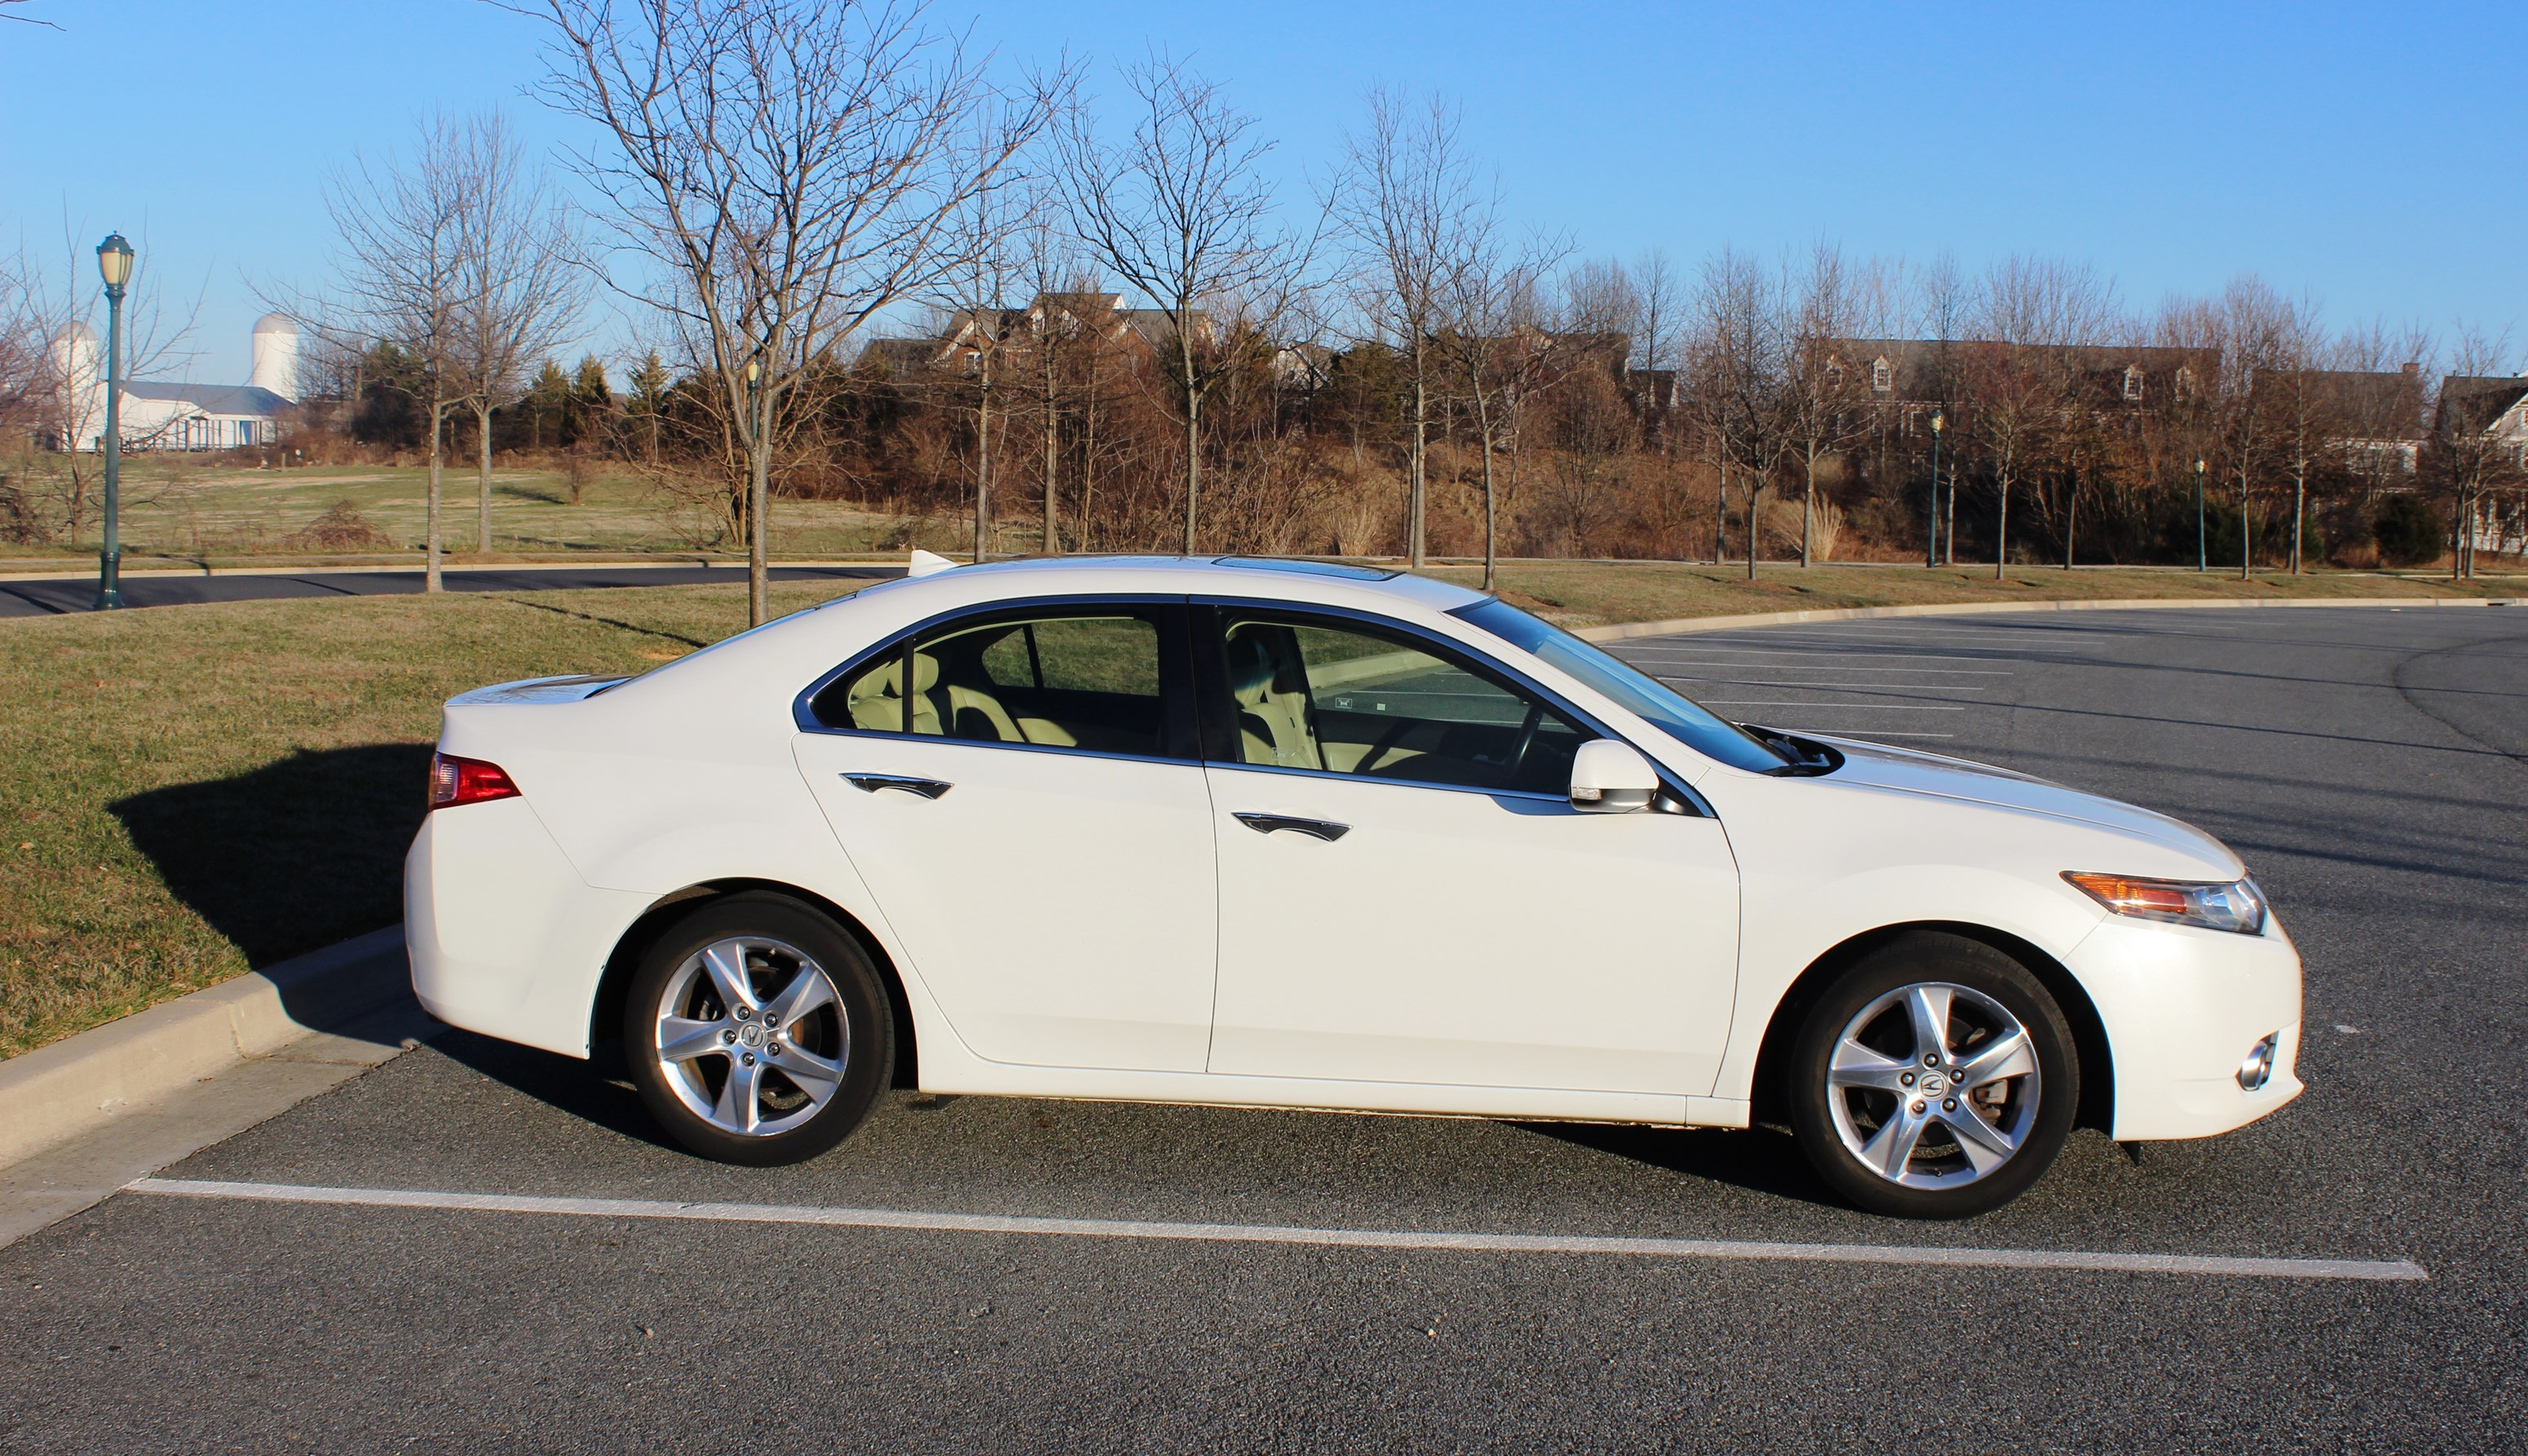 2012 Acura TSX - Very Good Condition - Clear le/Tech Package ... on yellow motorcycle, yellow kawasaki, yellow mclaren, yellow cord, yellow saleen, yellow morgan, yellow lexus, yellow mg, yellow studebaker, yellow saab, yellow chrysler, yellow eagle, yellow honda,